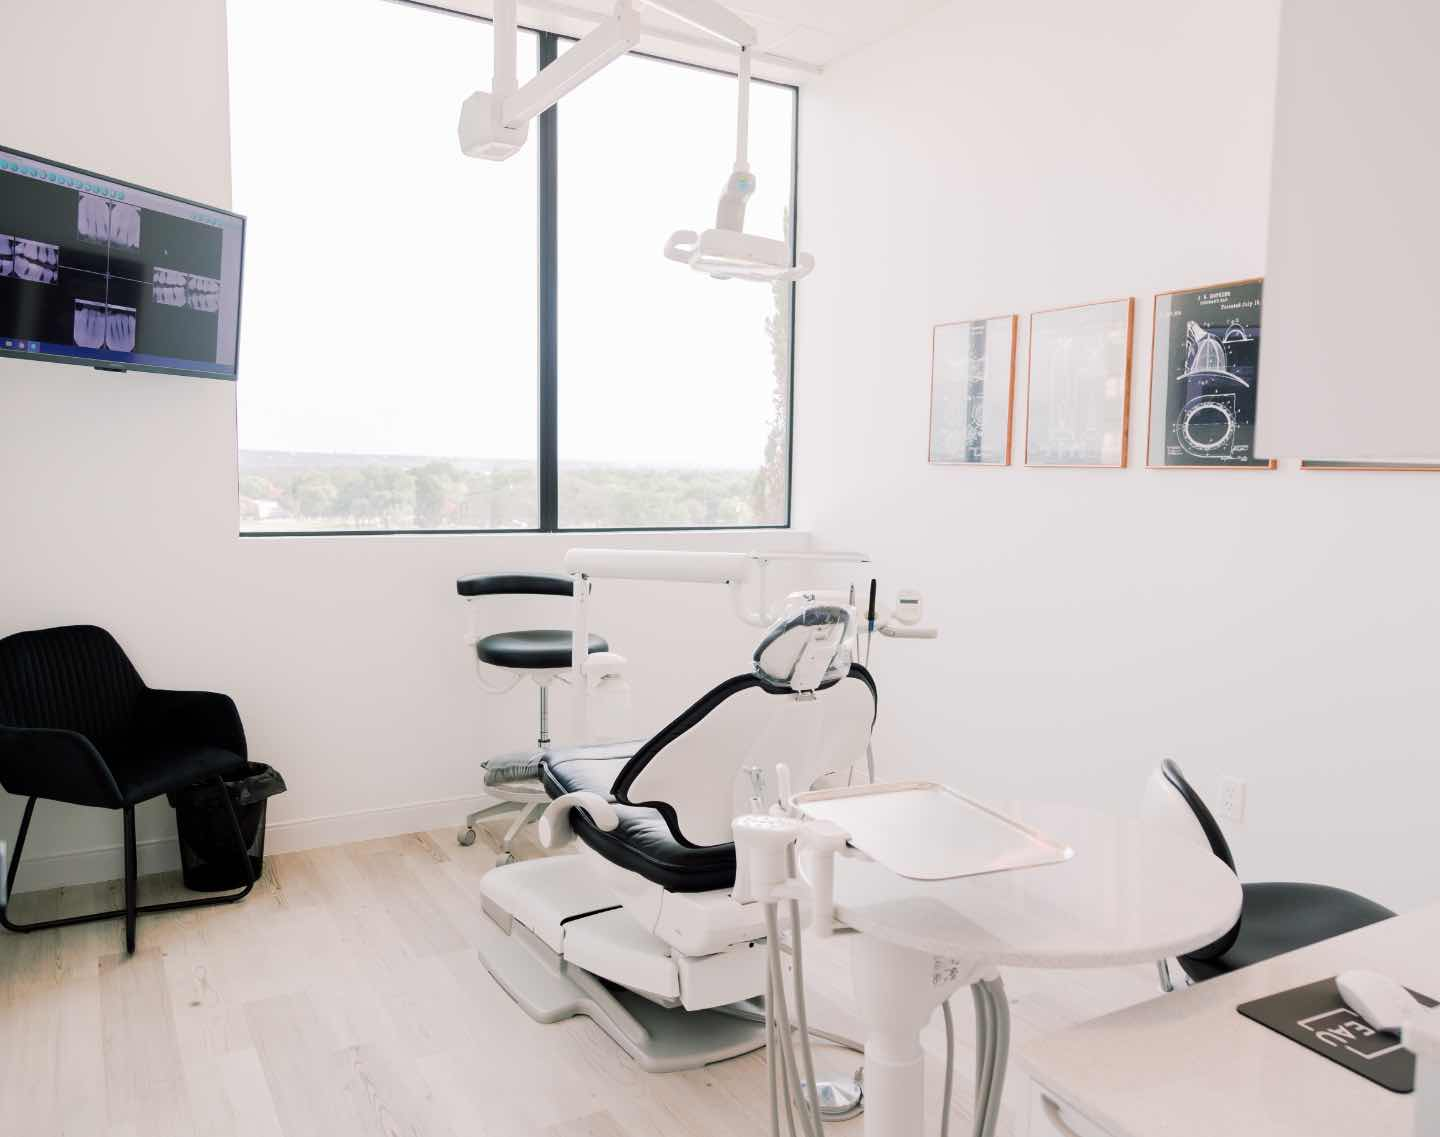 Photo of a dental chair in a bright, clean treatment room